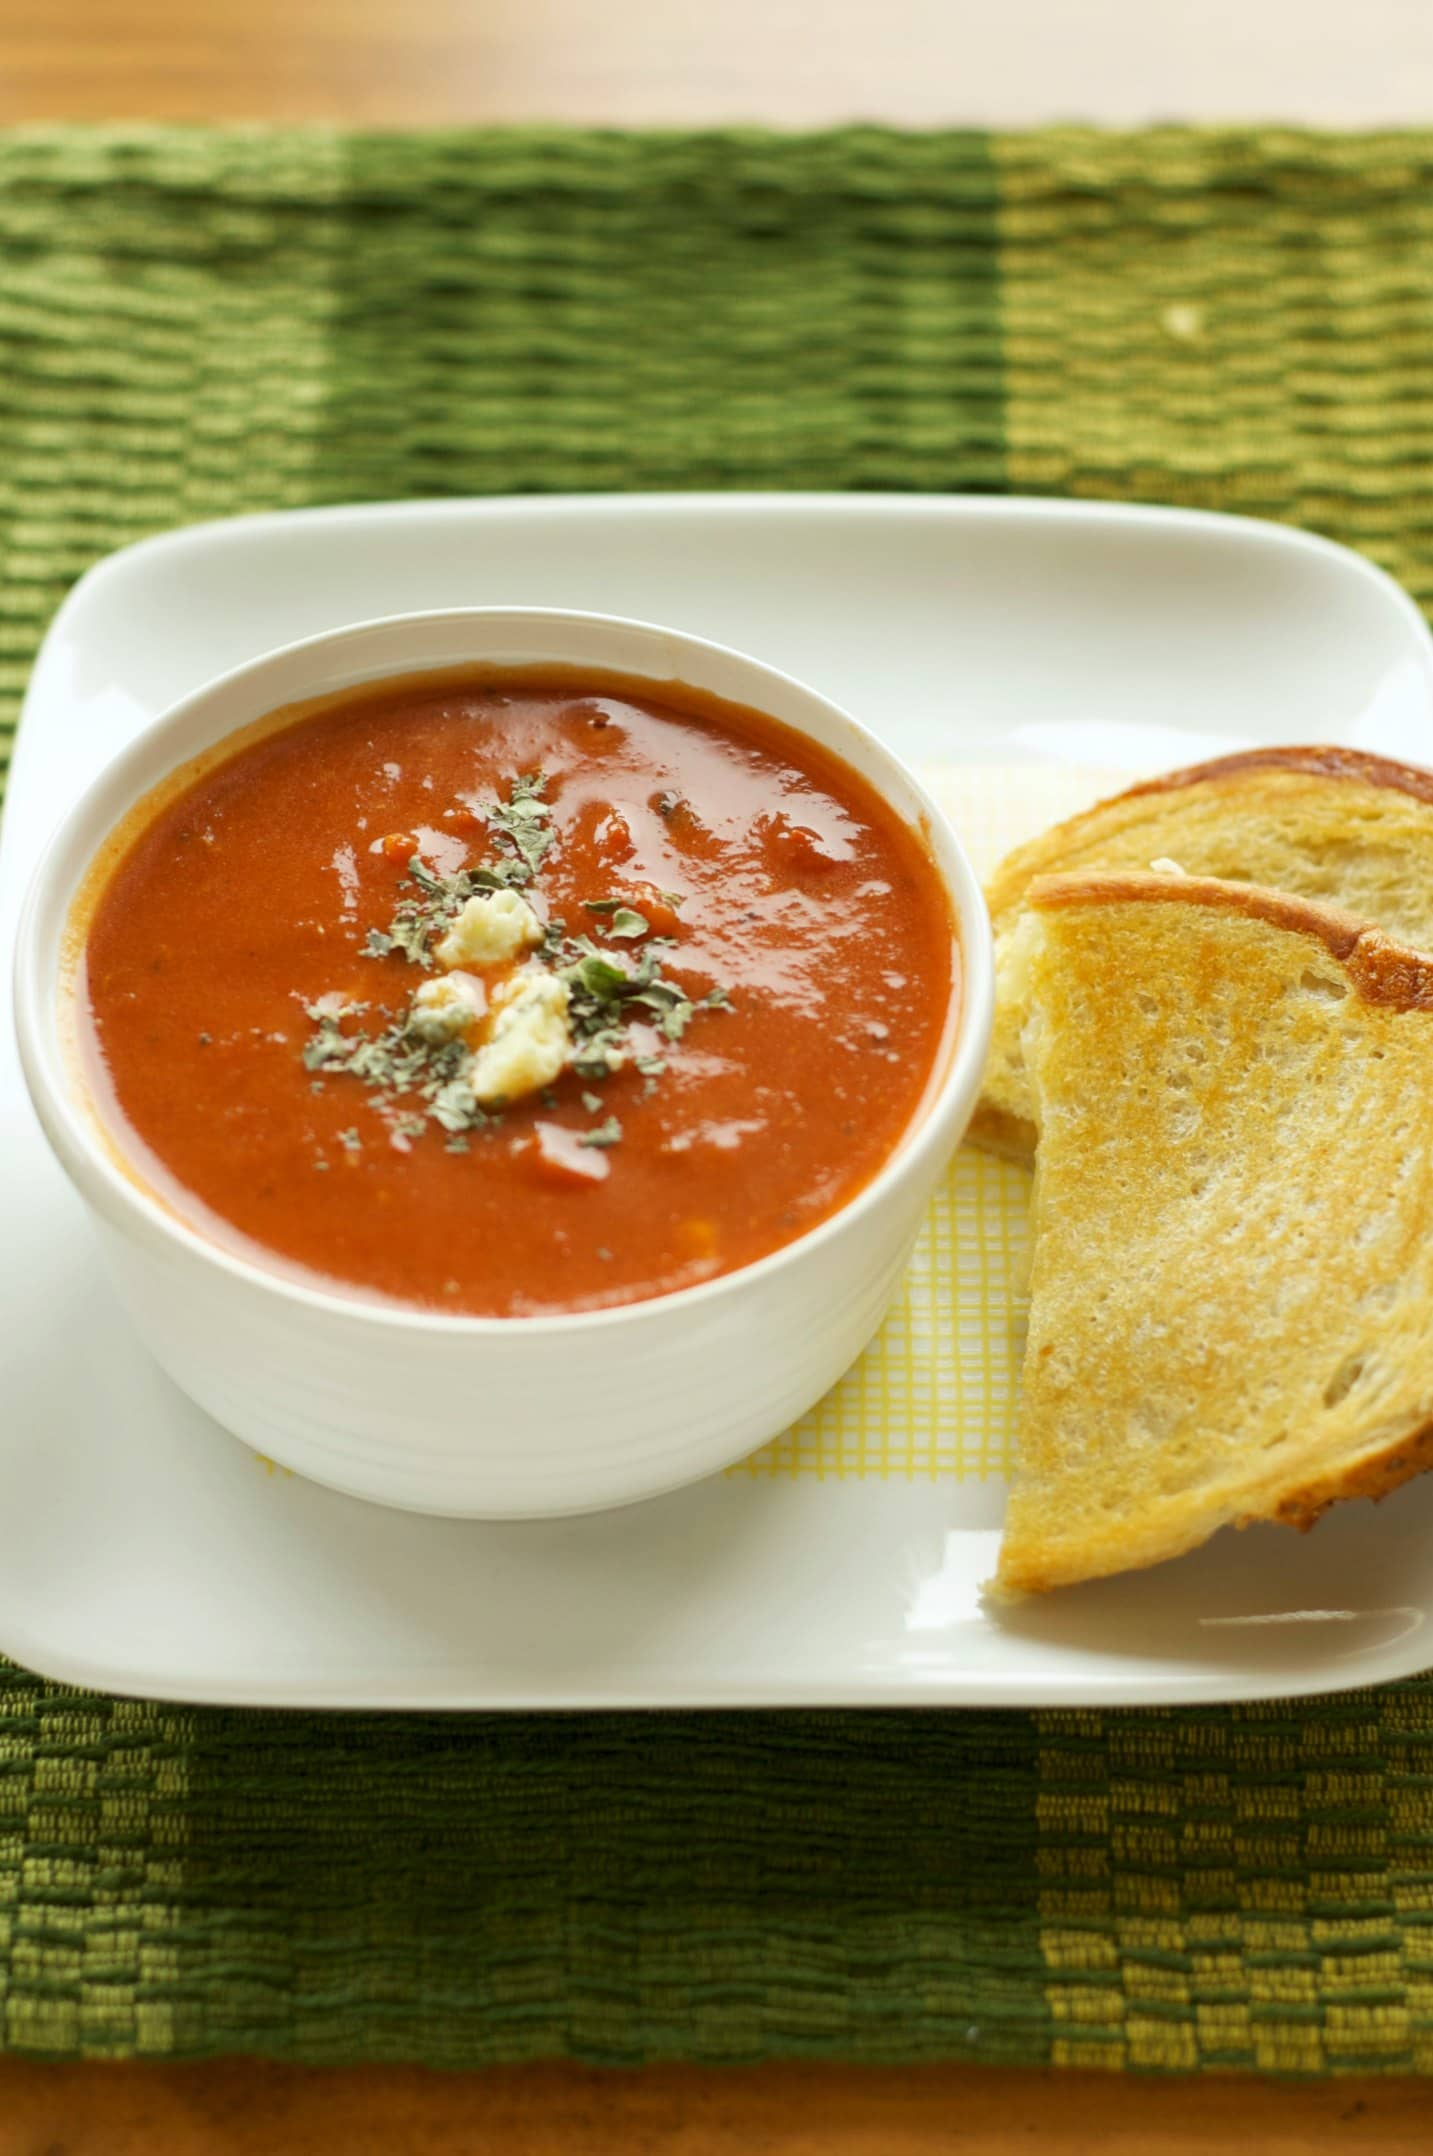 ... Fire Roasted Tomato and Creamy Gorgonzola Soup - Slow Cooker Gourmet